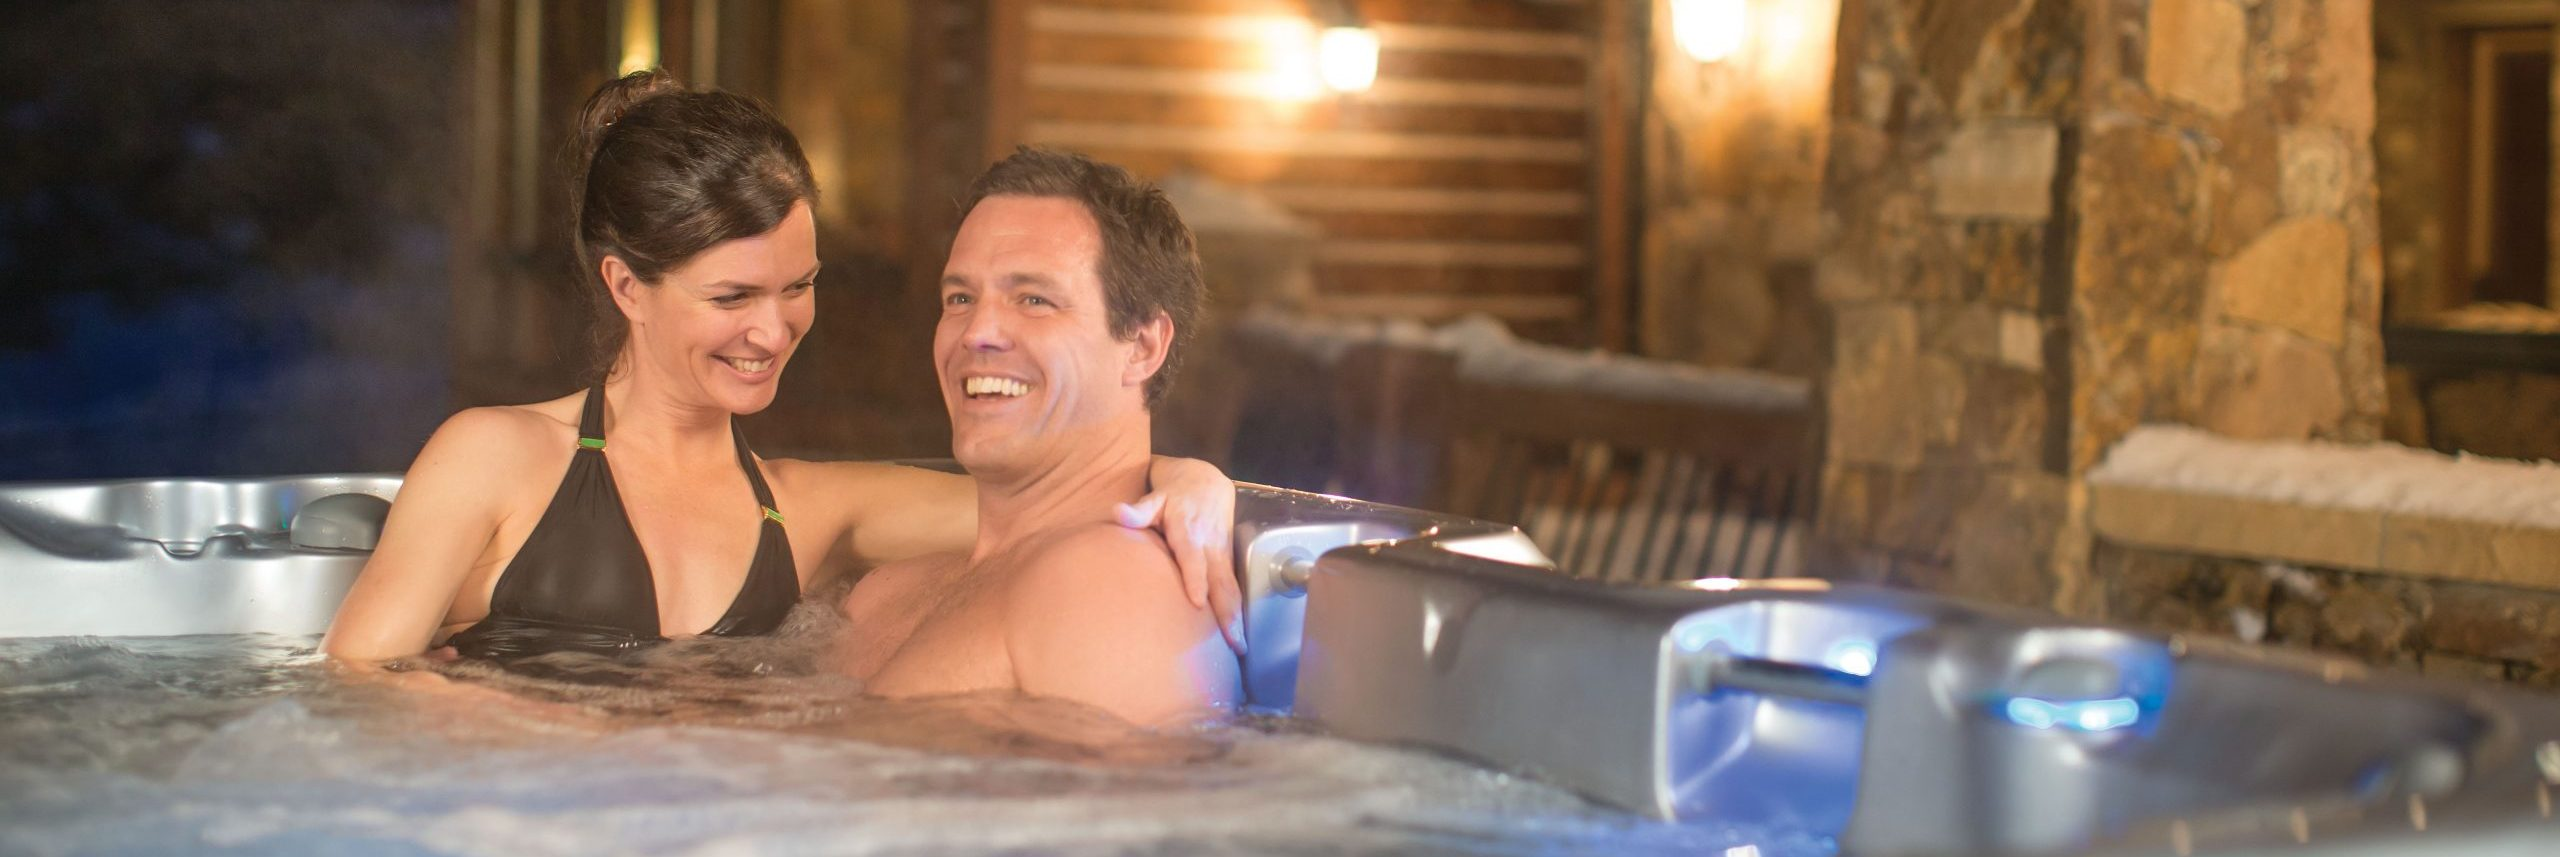 7 Ideas for the Ultimate Hot Tub Date Night